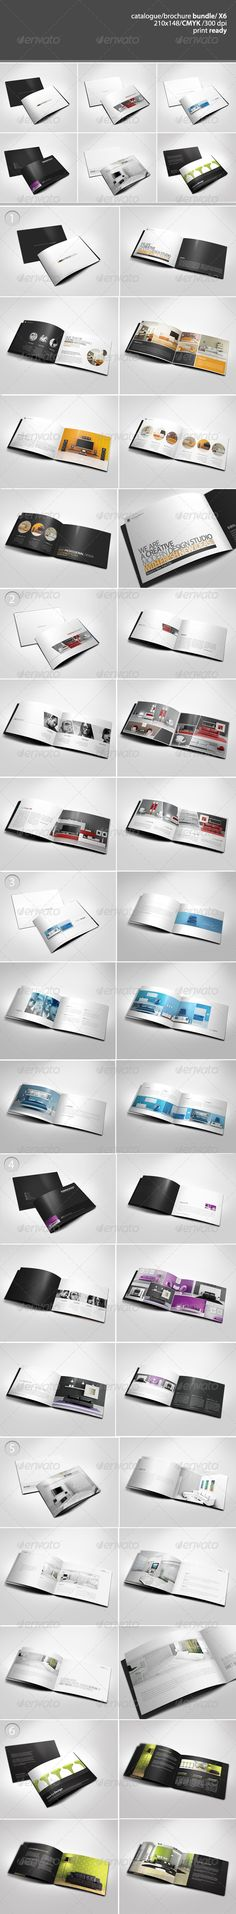 A5 Catalogue / Brochure Bundle  #GraphicRiver         This pack includes 6 professionally designed modern catalogue/brochure templates. Buying this bundle you save $24 and plenty of ti